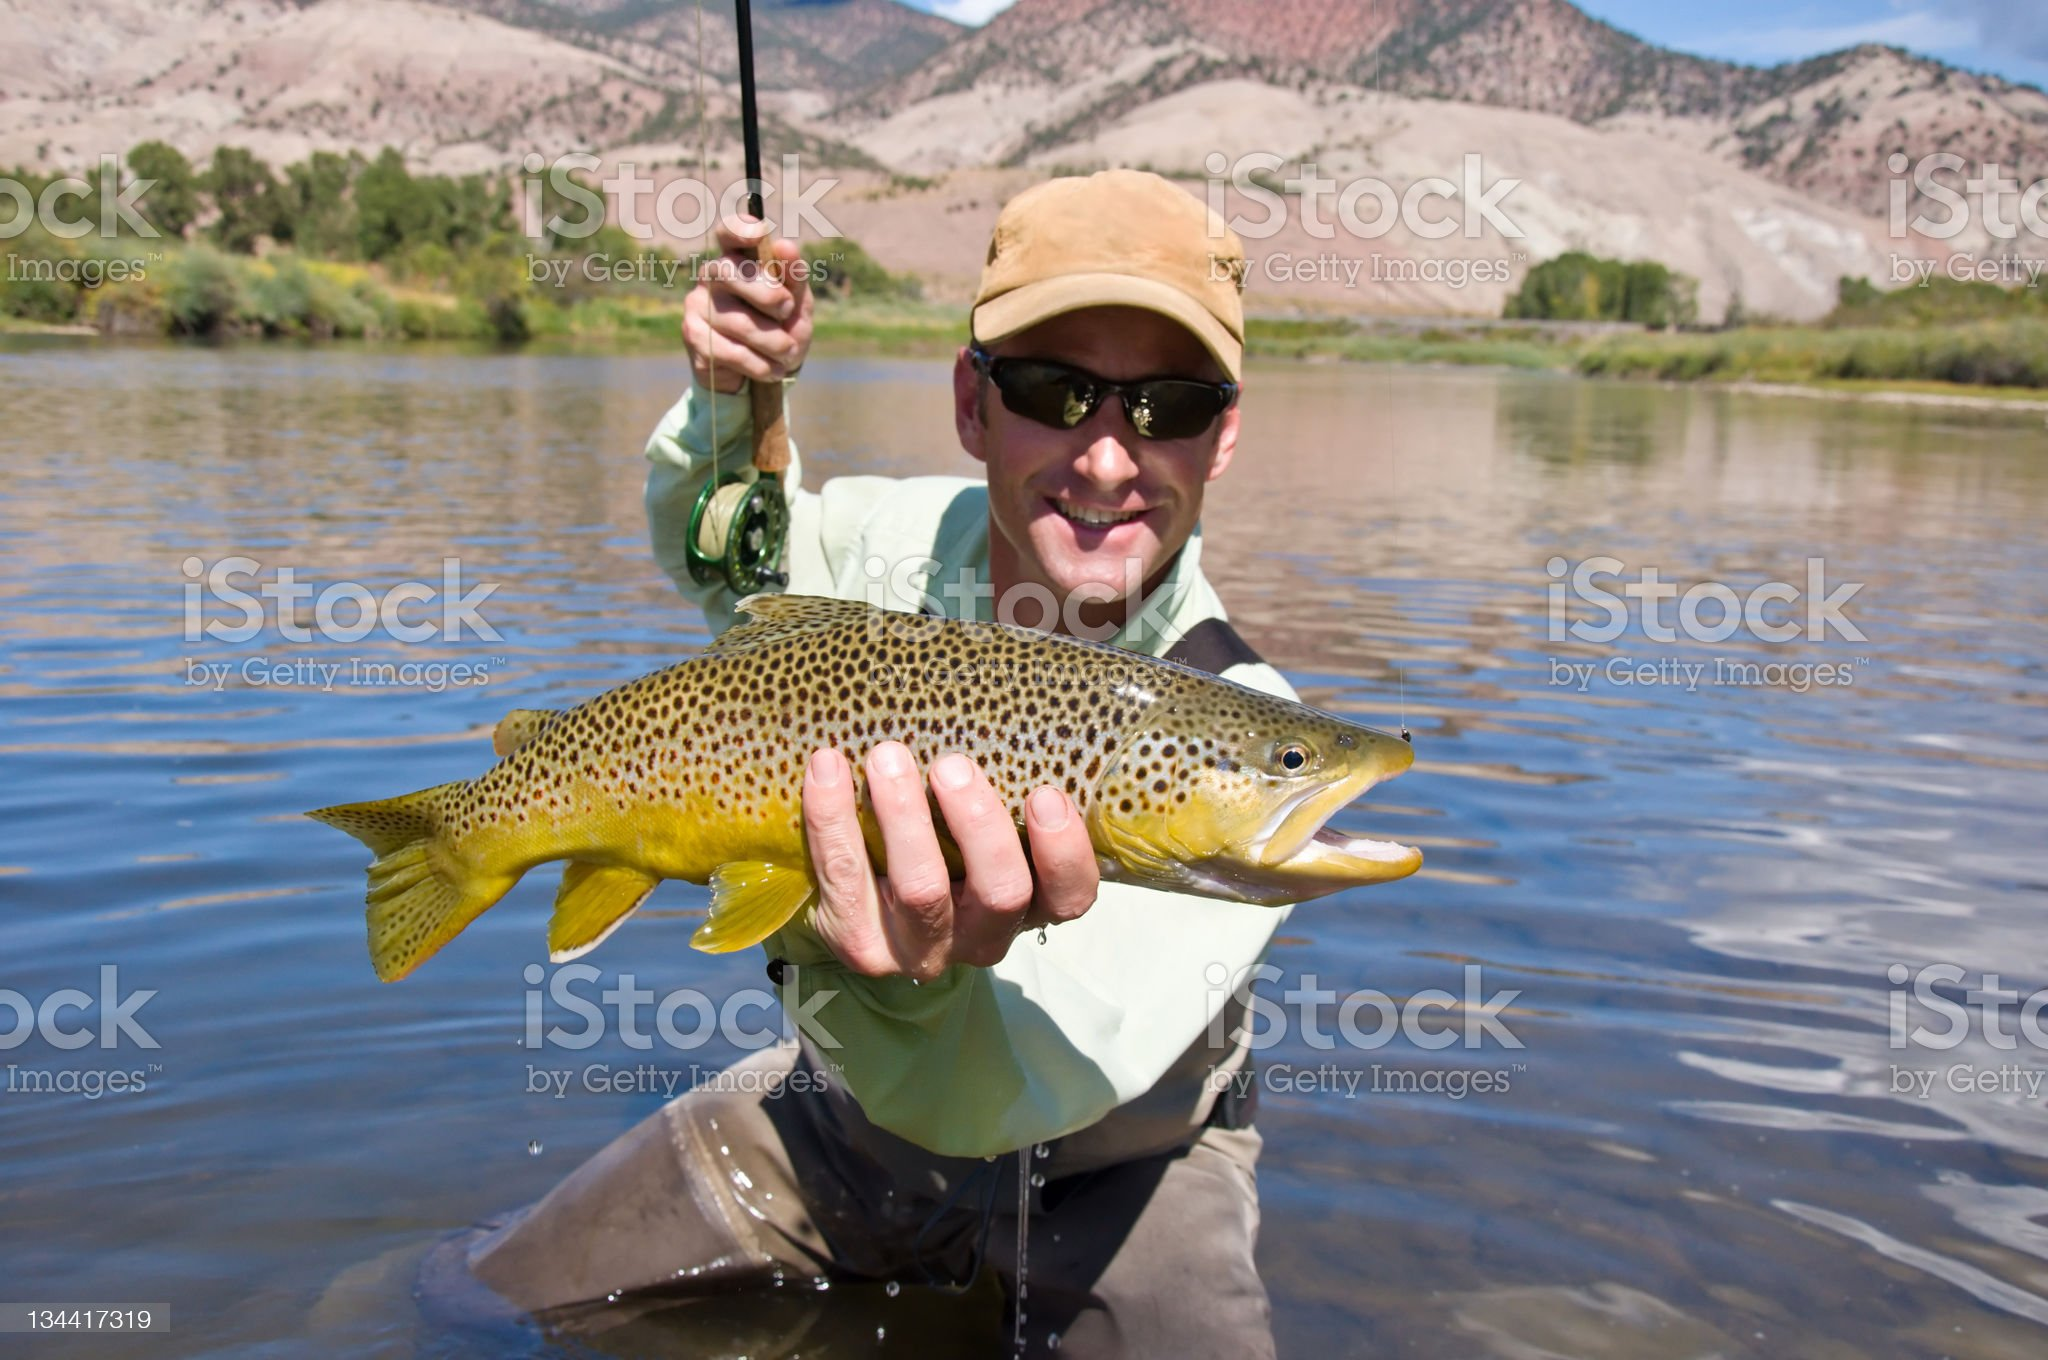 Man Fly Fishing Catches Trout royalty-free stock photo